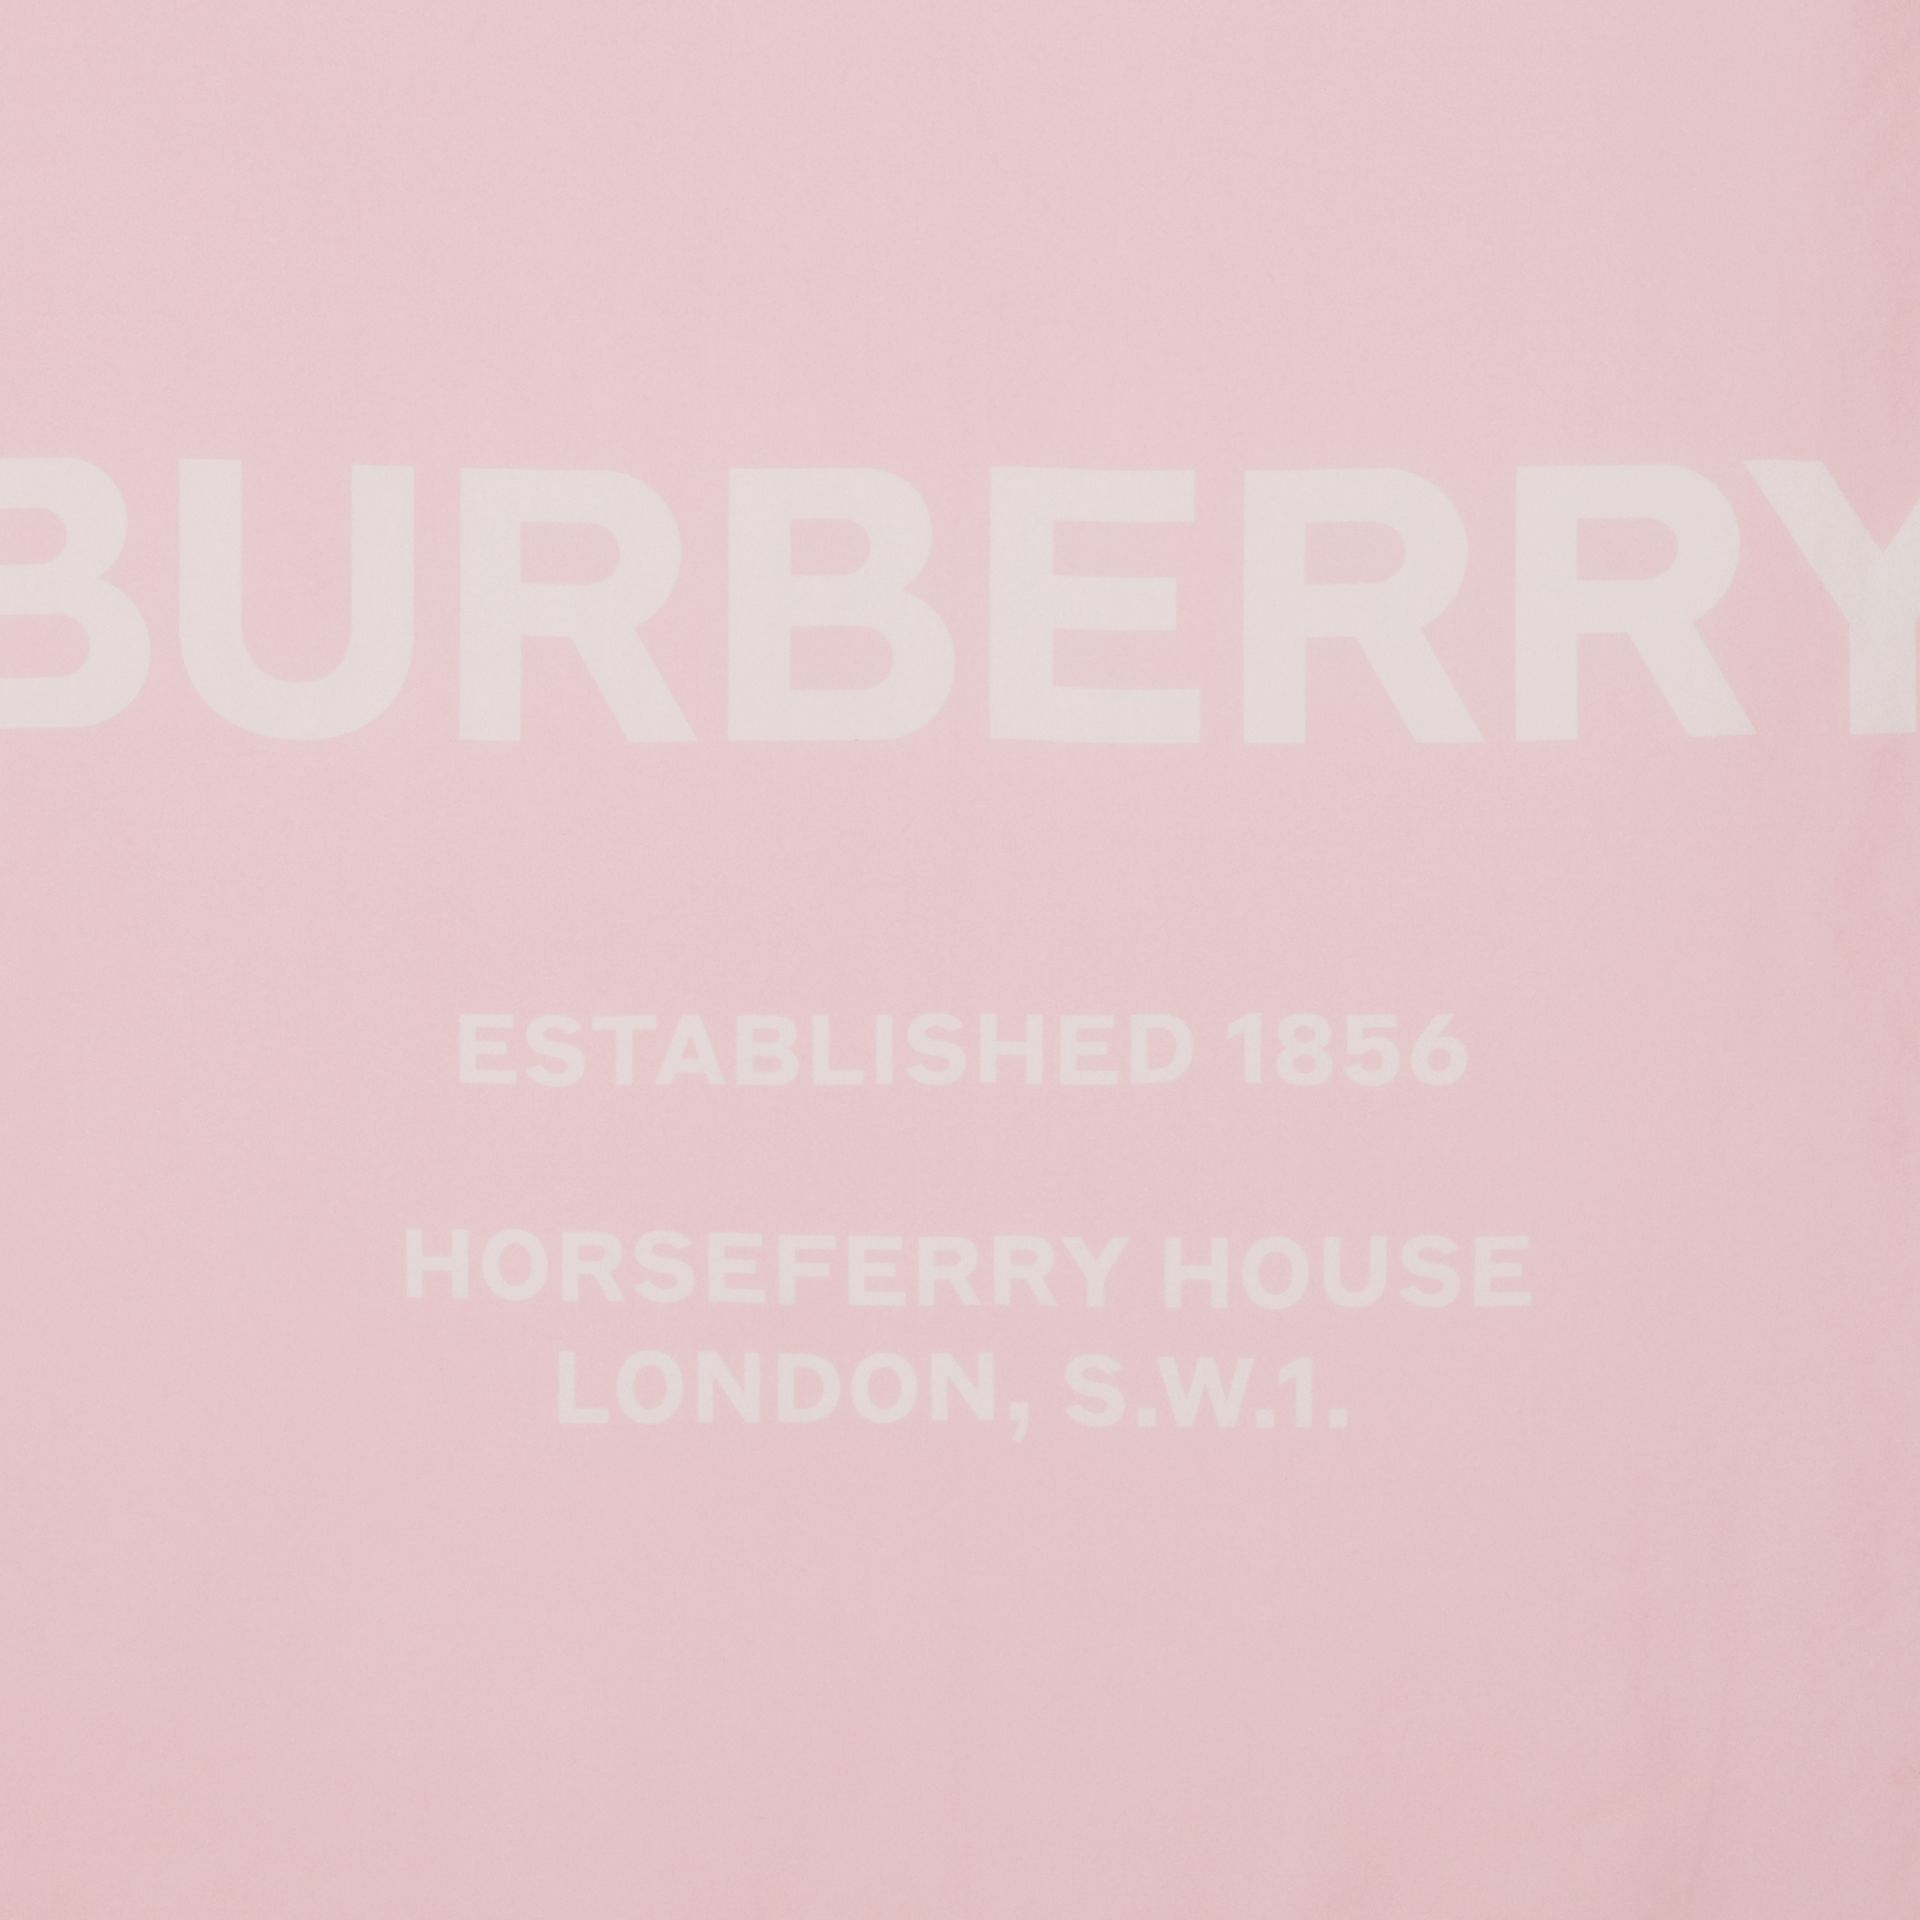 Horseferry Print Silk Square Scarf in Pink | Burberry United States - gallery image 1